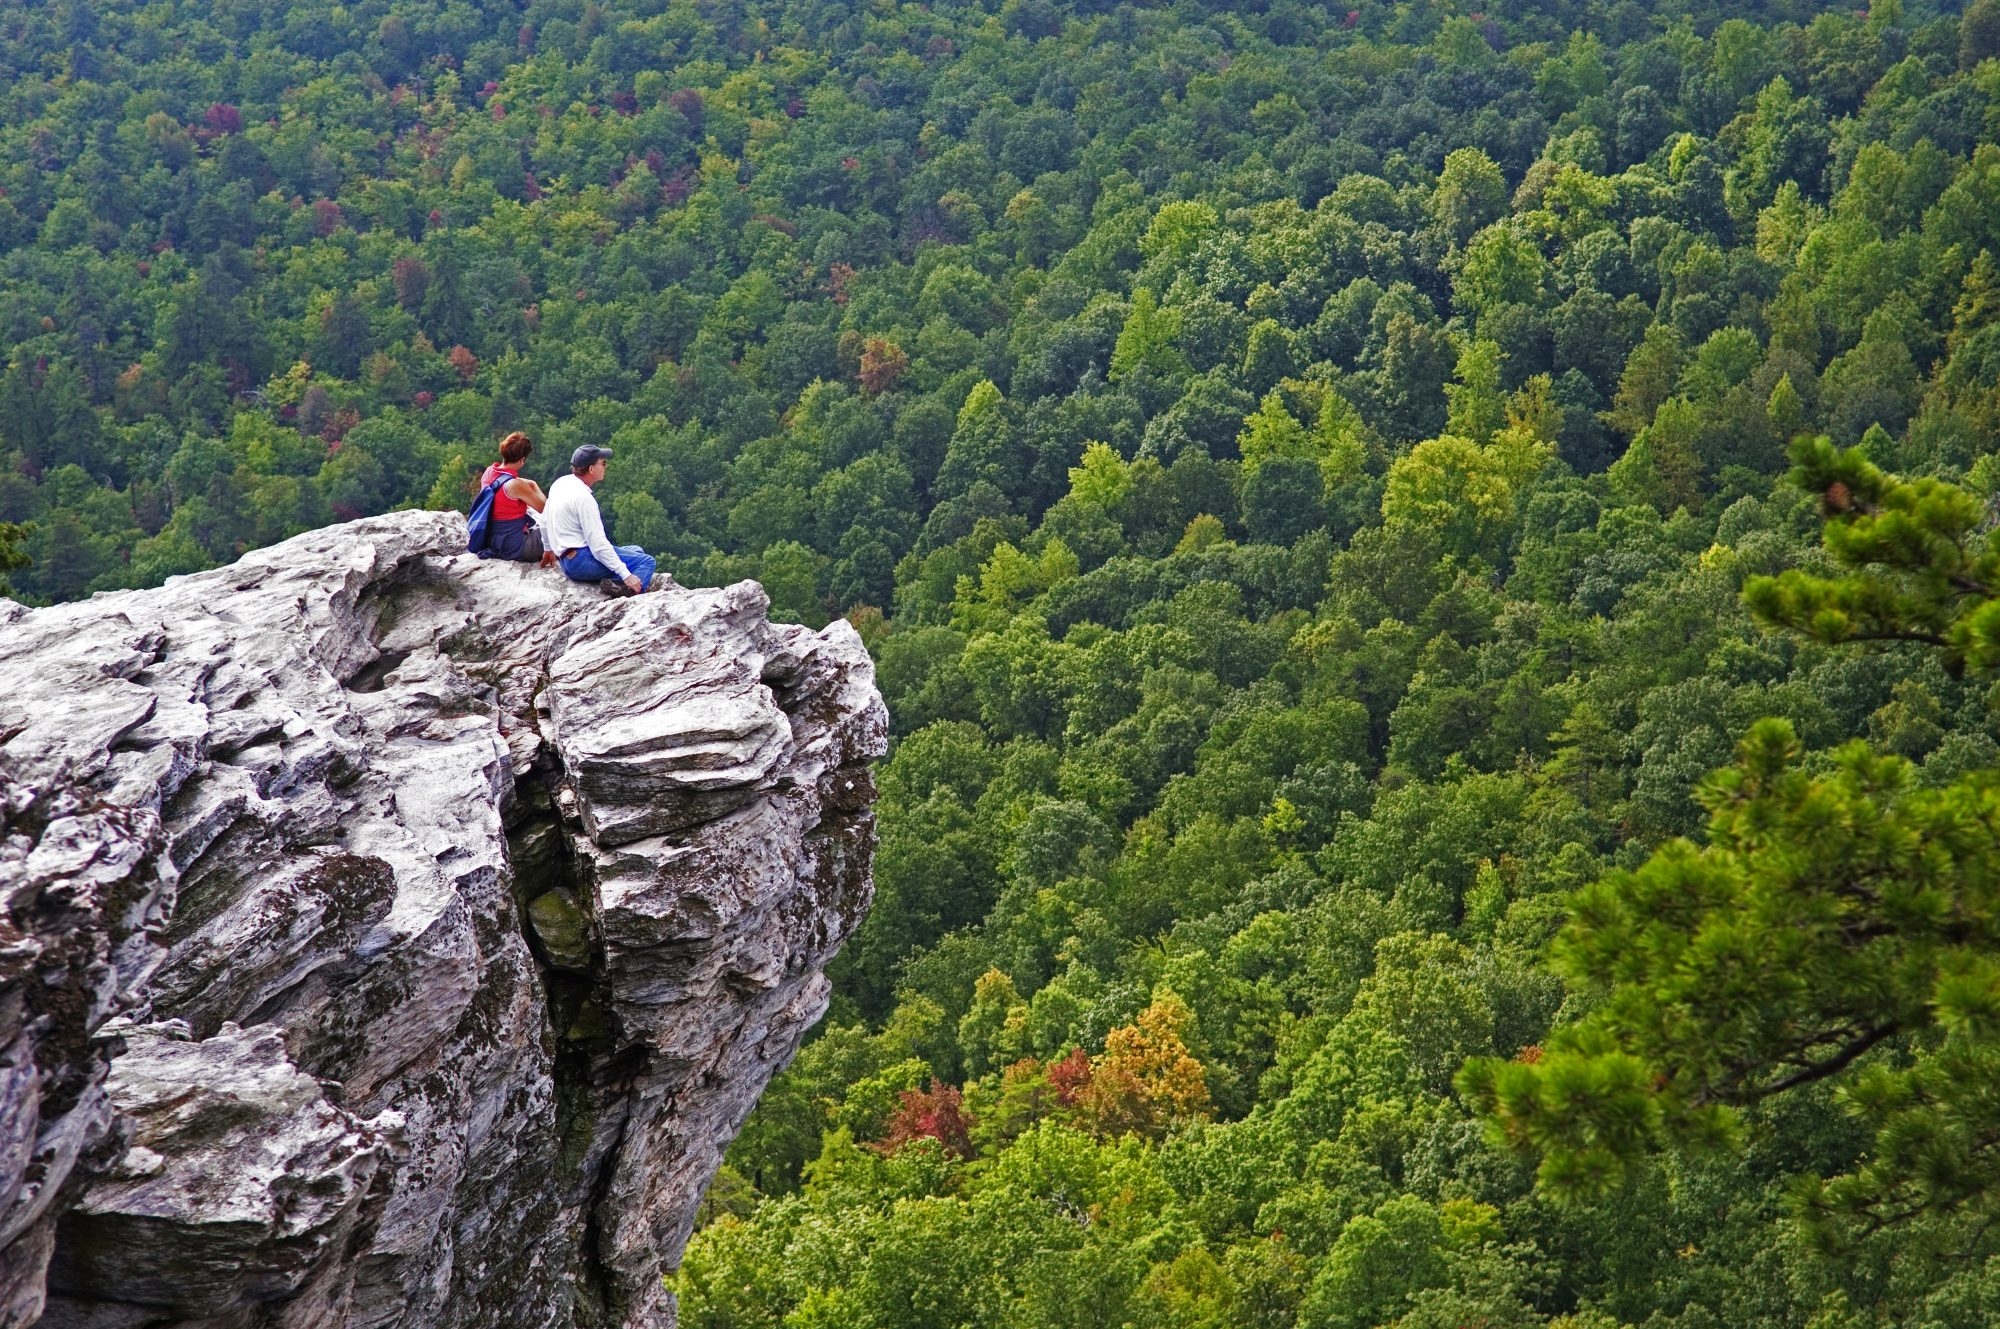 Hanging Rock State Park in Danbury, NC